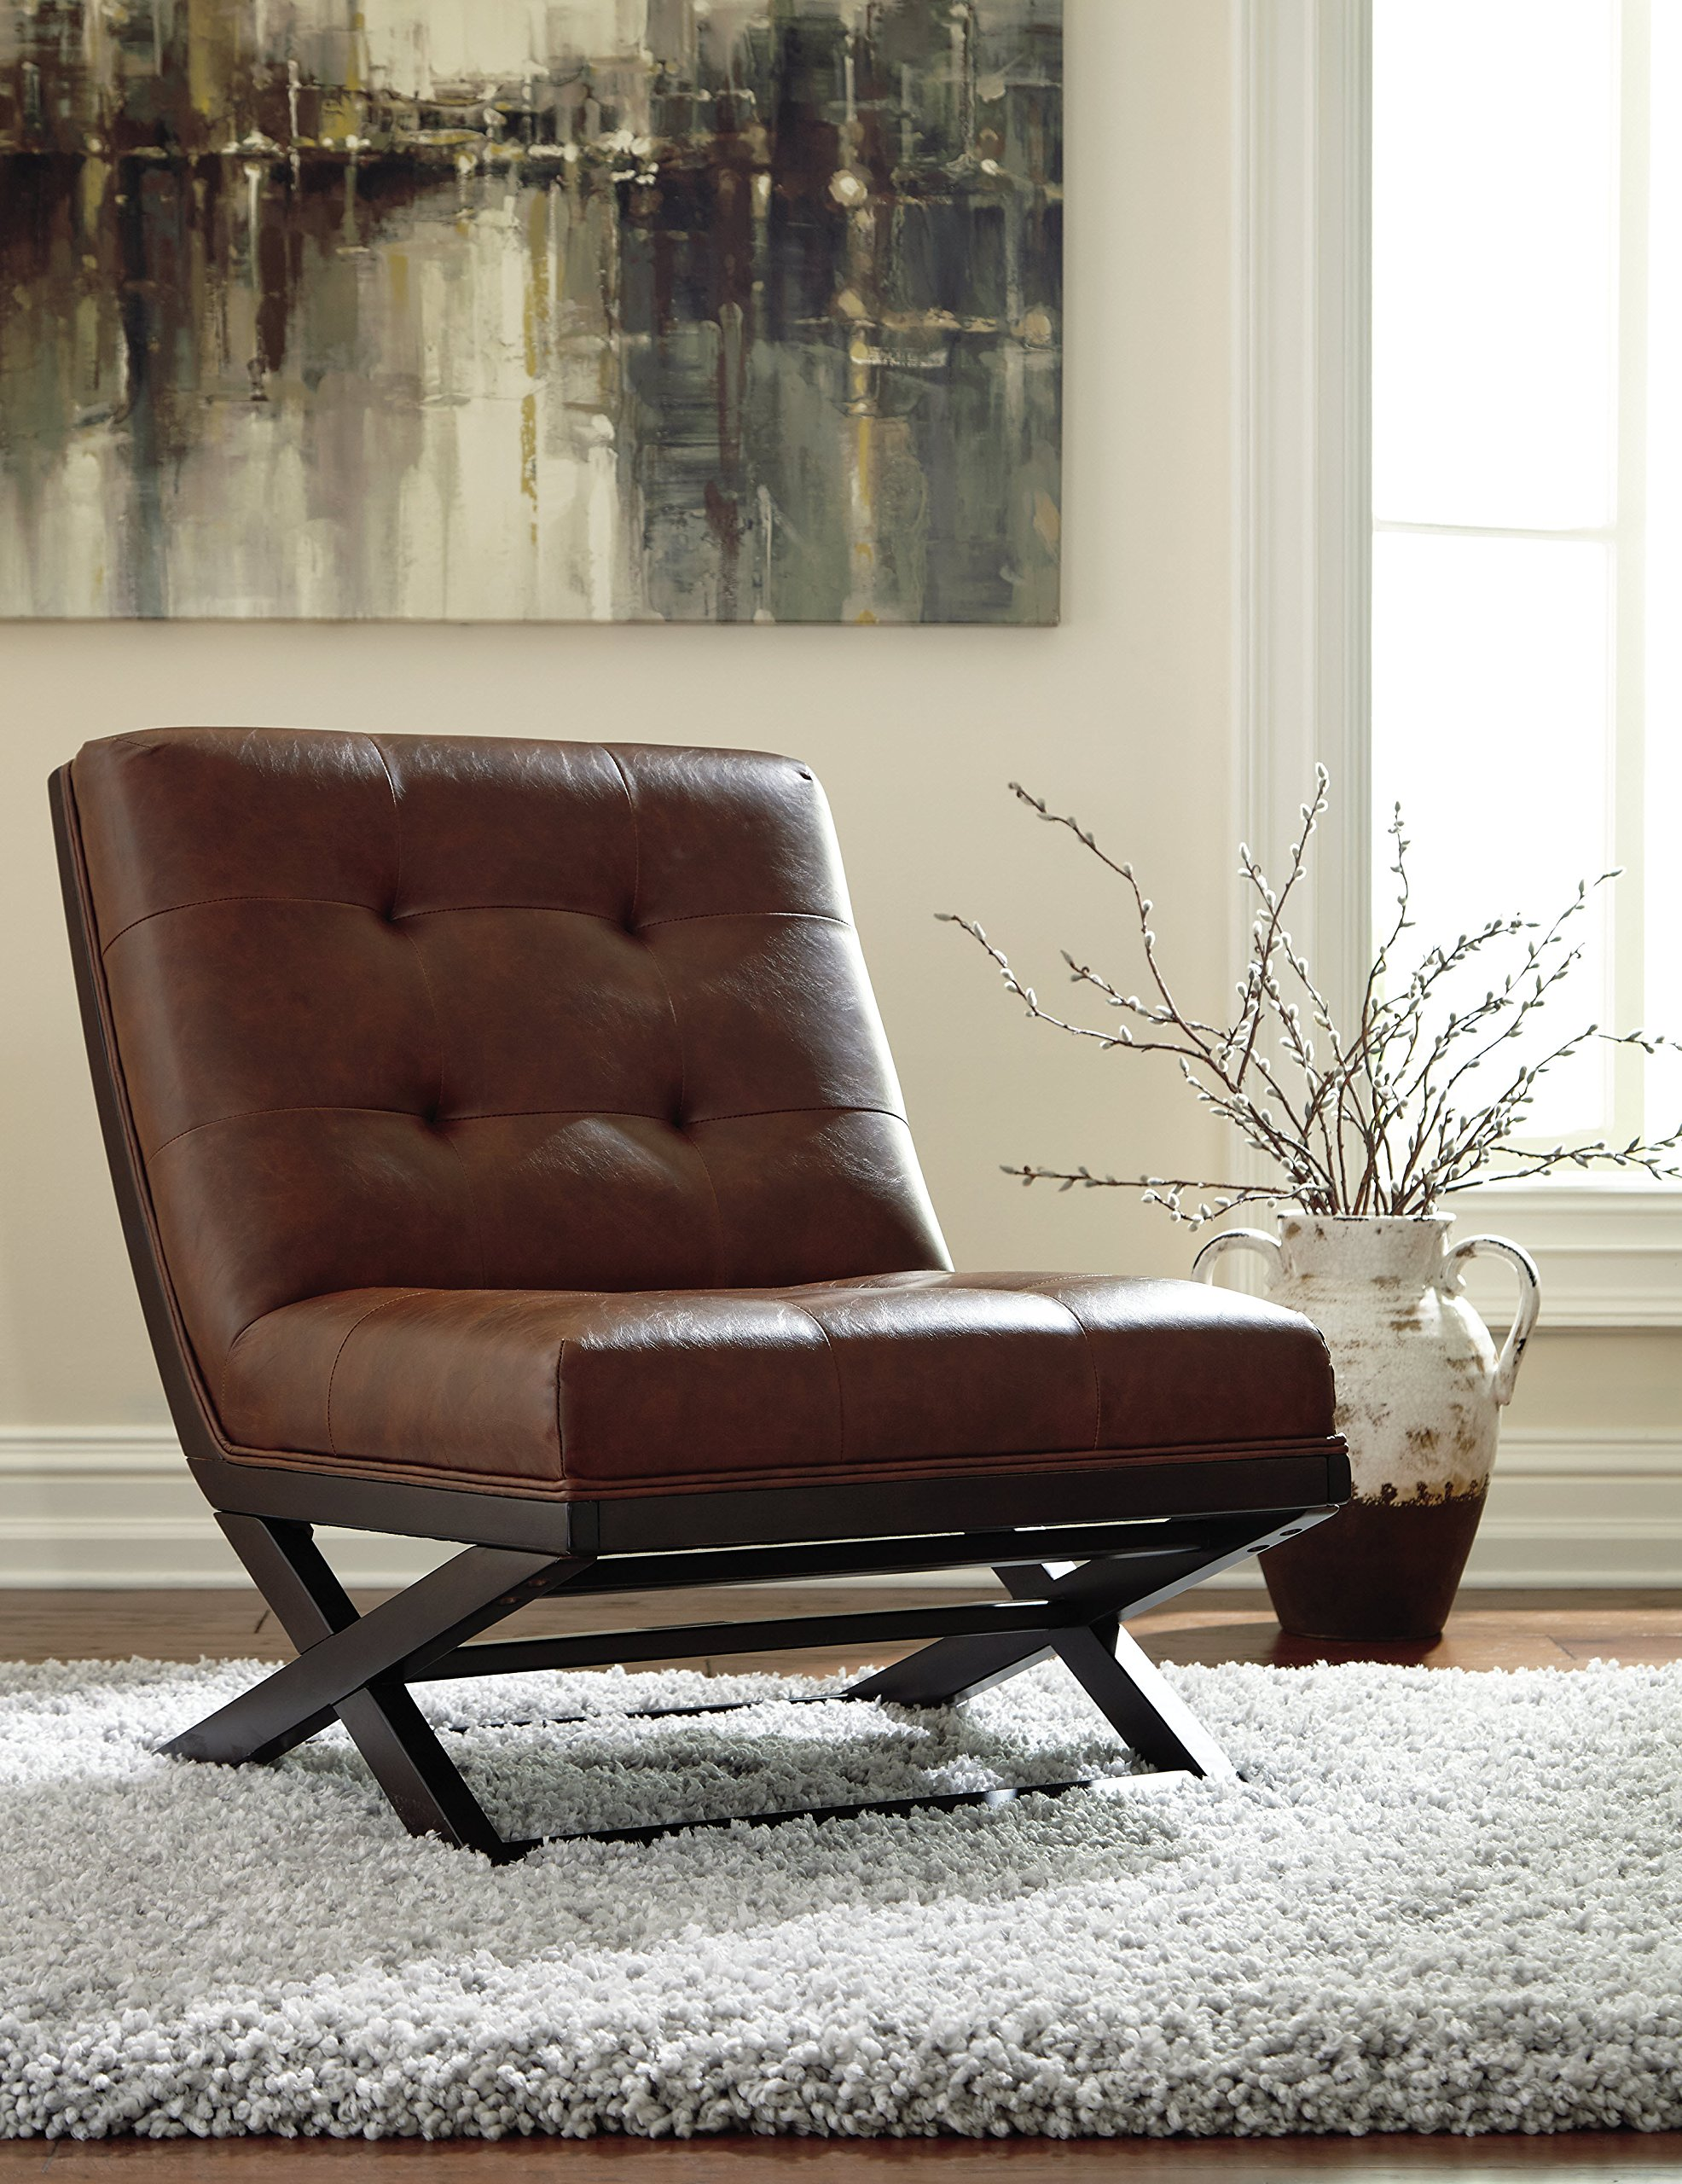 "Signature Design by Ashley - Sidewinder Accent Chair - Tufted Faux Leather - Brown - TUFTED ACCENT CHAIR: Sit back and enjoy high style. The faux leather exudes luxury, while the generous size lets you sprawl out. This armless chair is sure to make a bold statement HANDSOMELY CRAFTED: Sit back on high-resiliency foam cushions wrapped in faux leather upholstery. Designed with an exposed frame in a faux wood finish SCISSOR BASE: Inspired by the Barcelona chair, the ""X"" base and button tufting are chic details that set it apart from the rest - living-room-furniture, living-room, accent-chairs - 91kG0P1zIKL -"